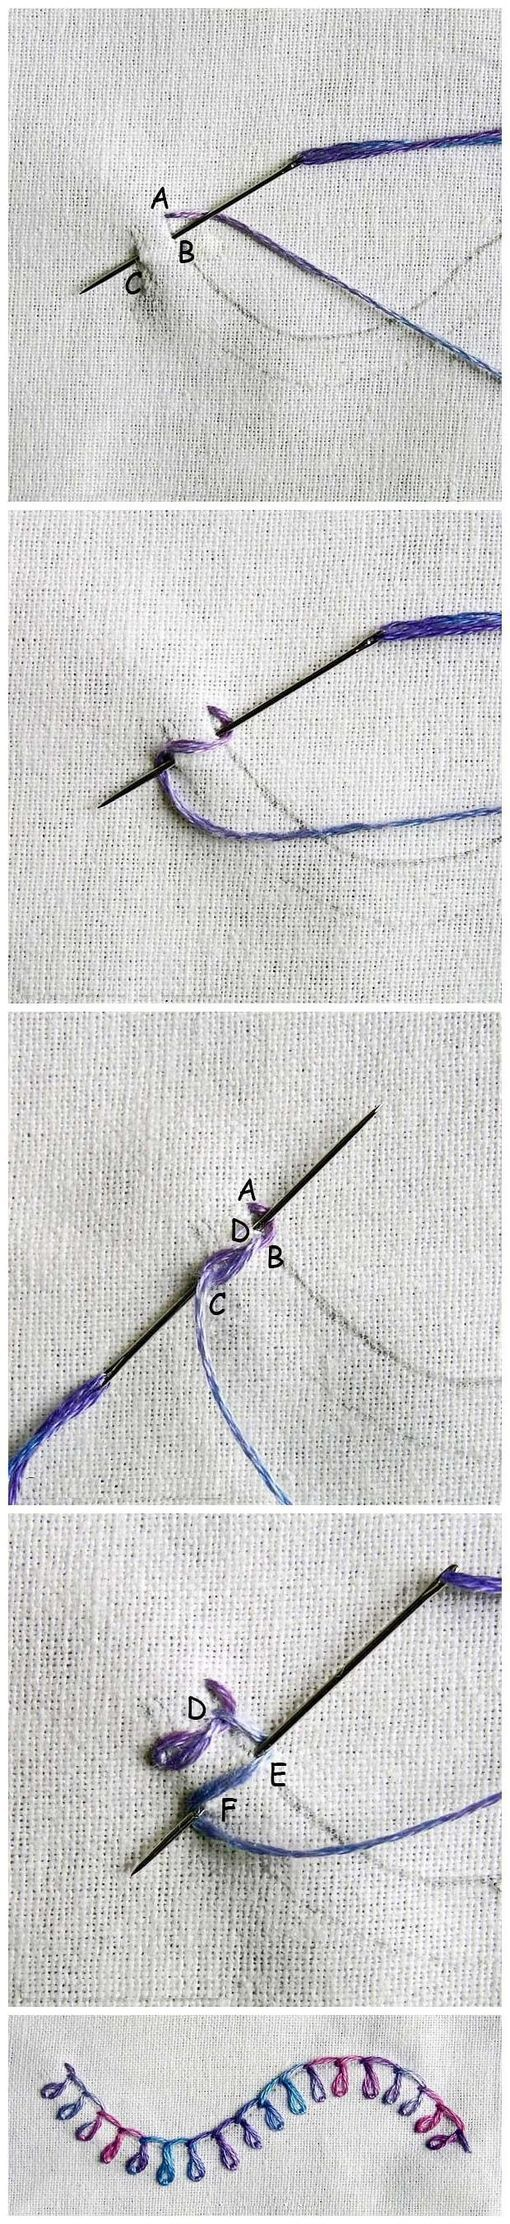 Charming Needlework (the only way I can actually learn interesting needlework is with detailed picture diagrams!)